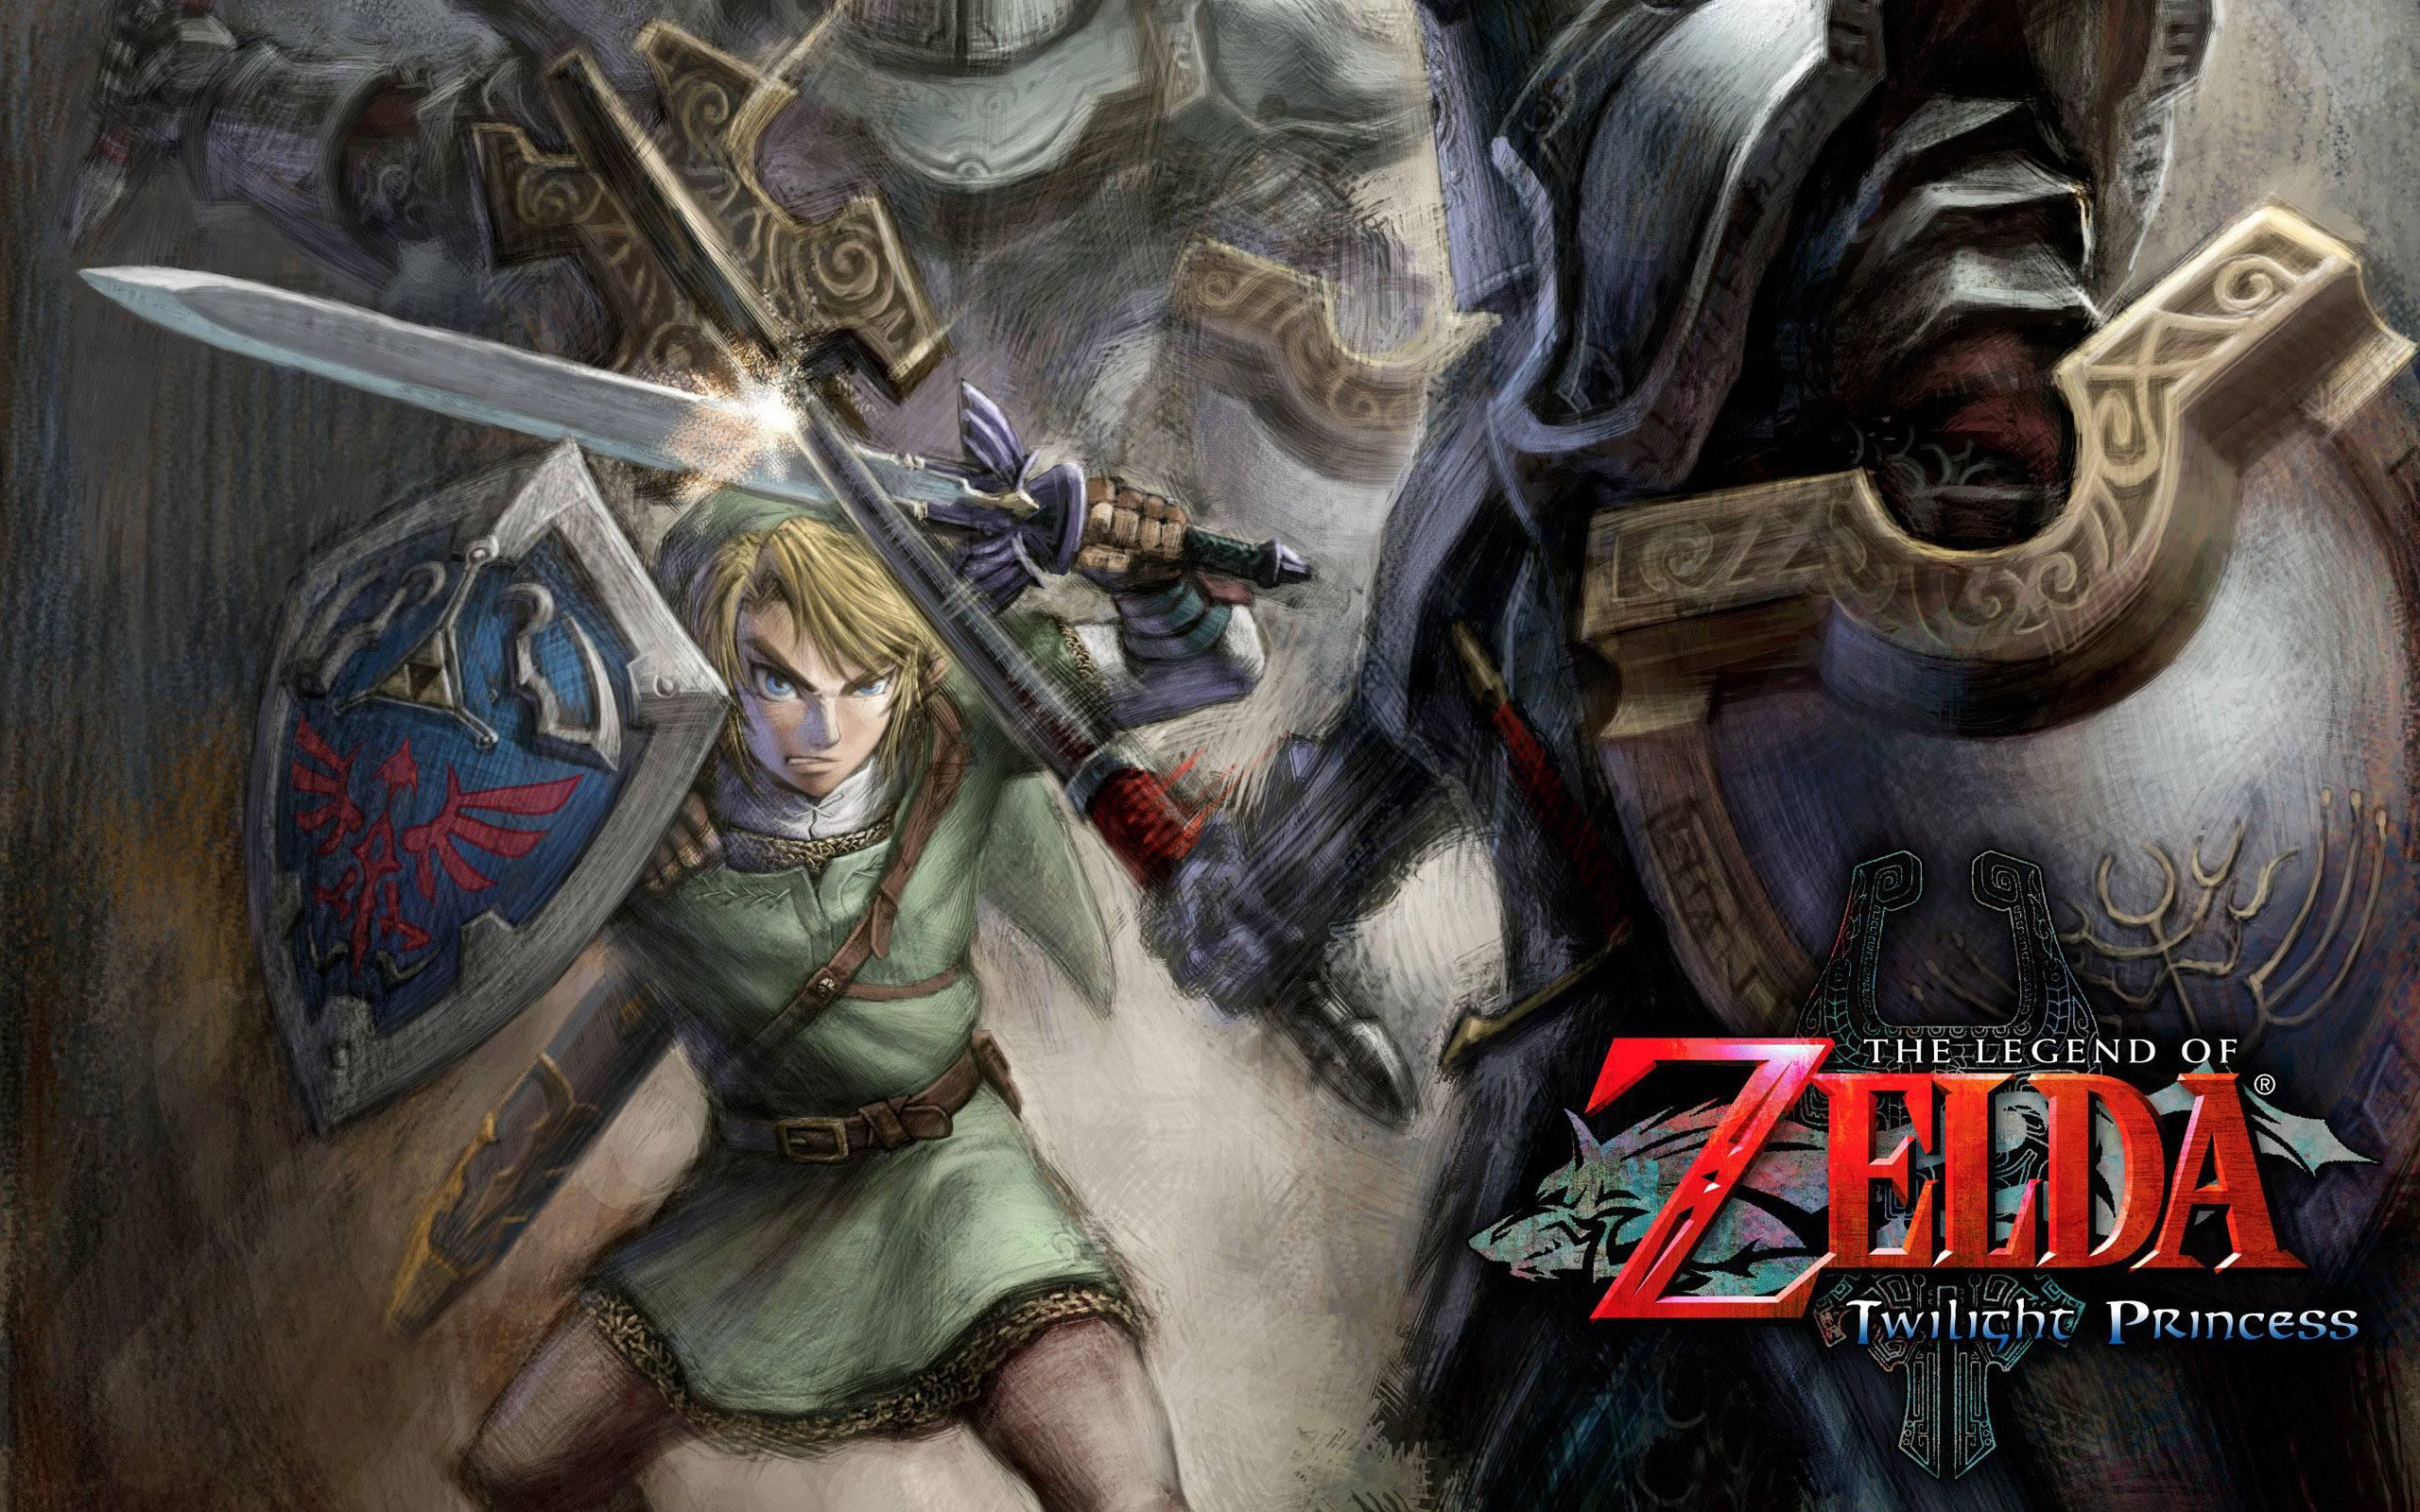 Download Twilight Princess Wallpaper Hd Backgrounds